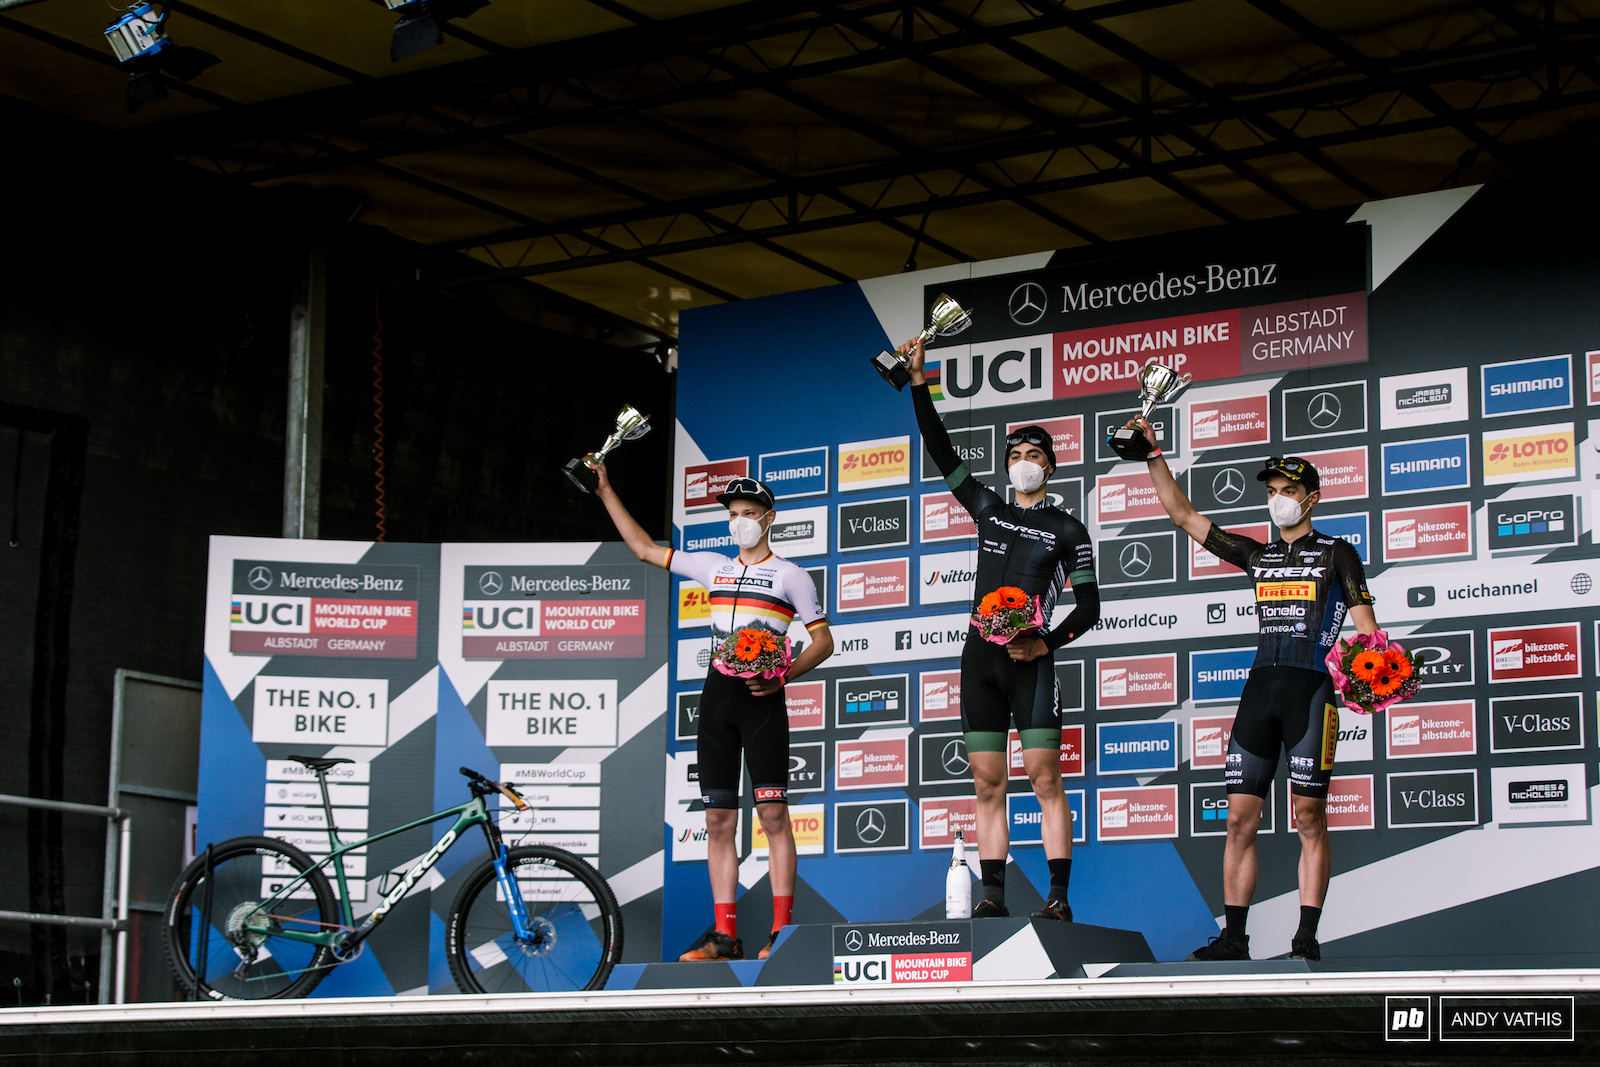 Your top U23 Men - 1st Carter Woods 2nd David List and 3rd Simone Avondetto